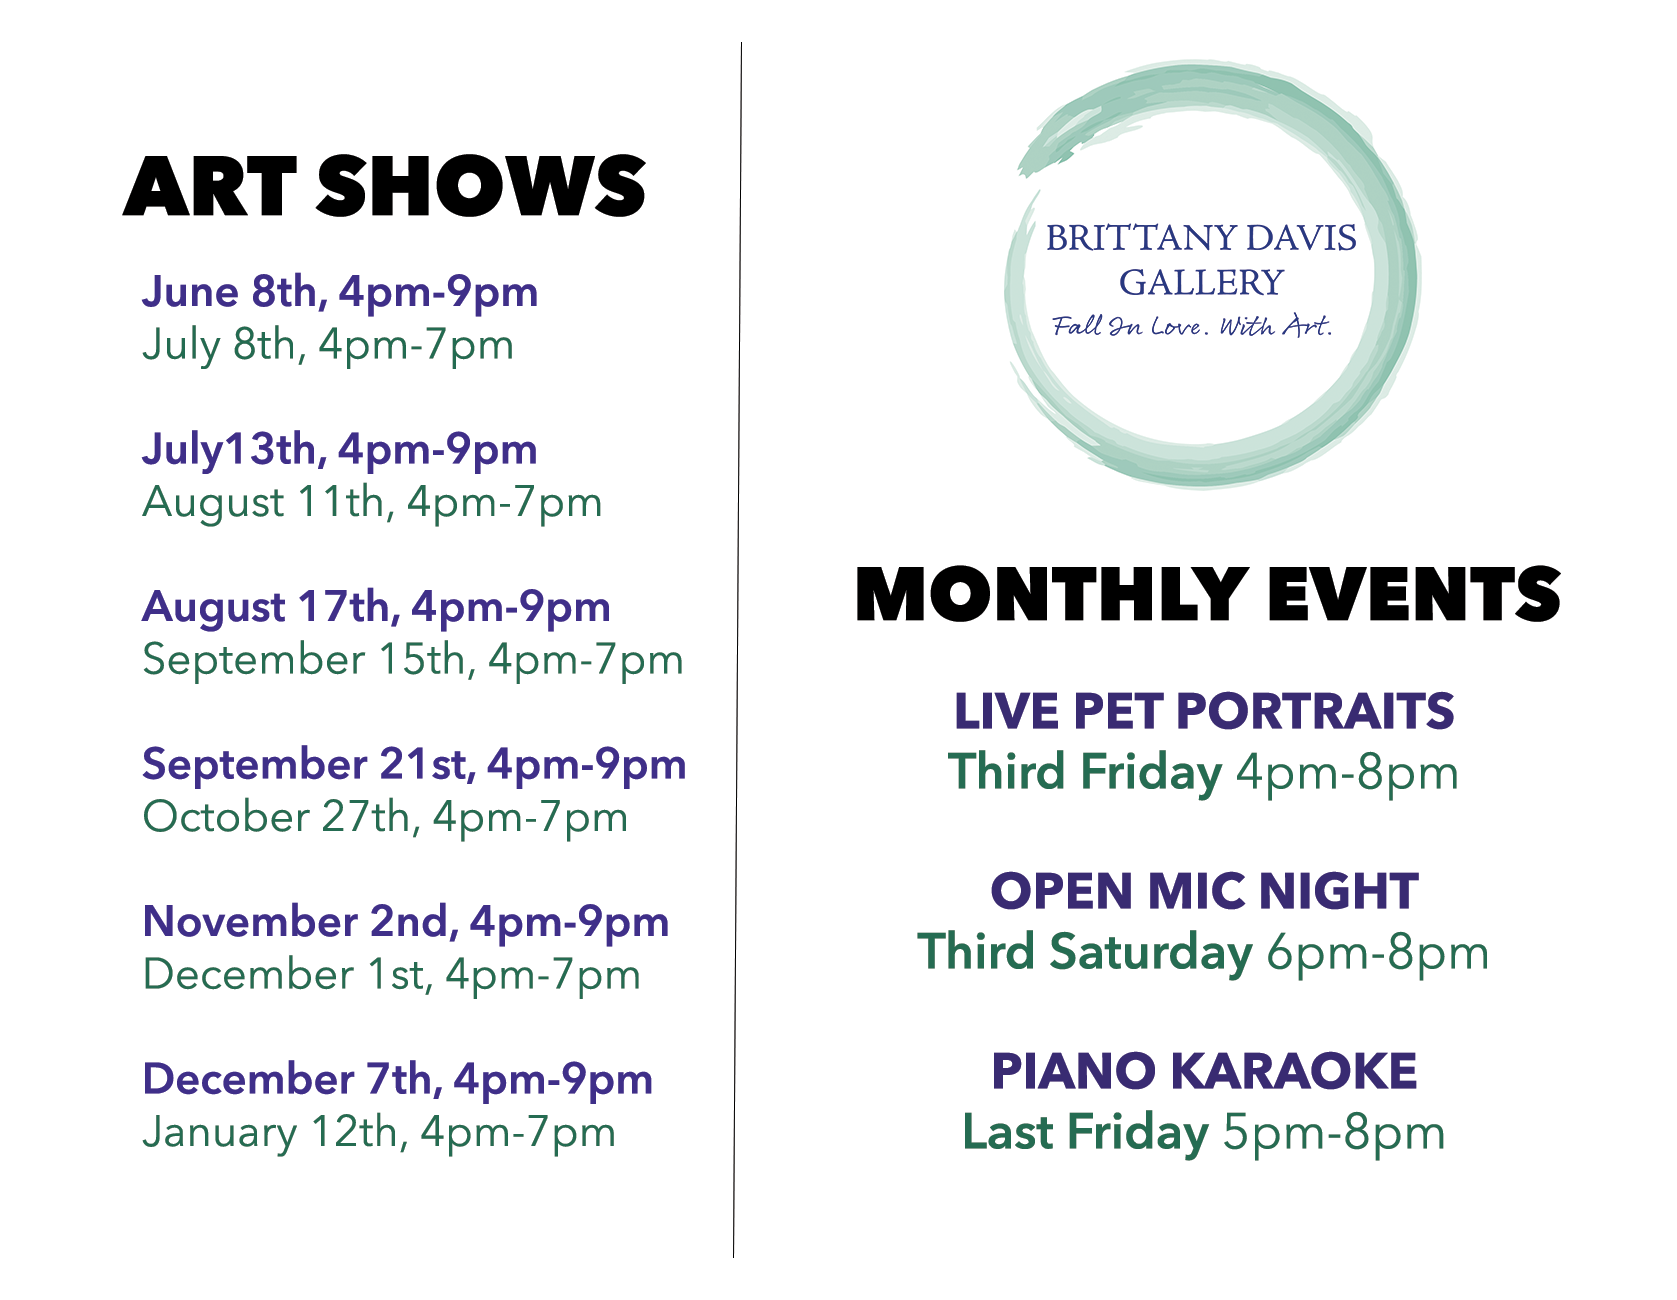 Brittany_Davis_Gallery_Events_Schedule.png